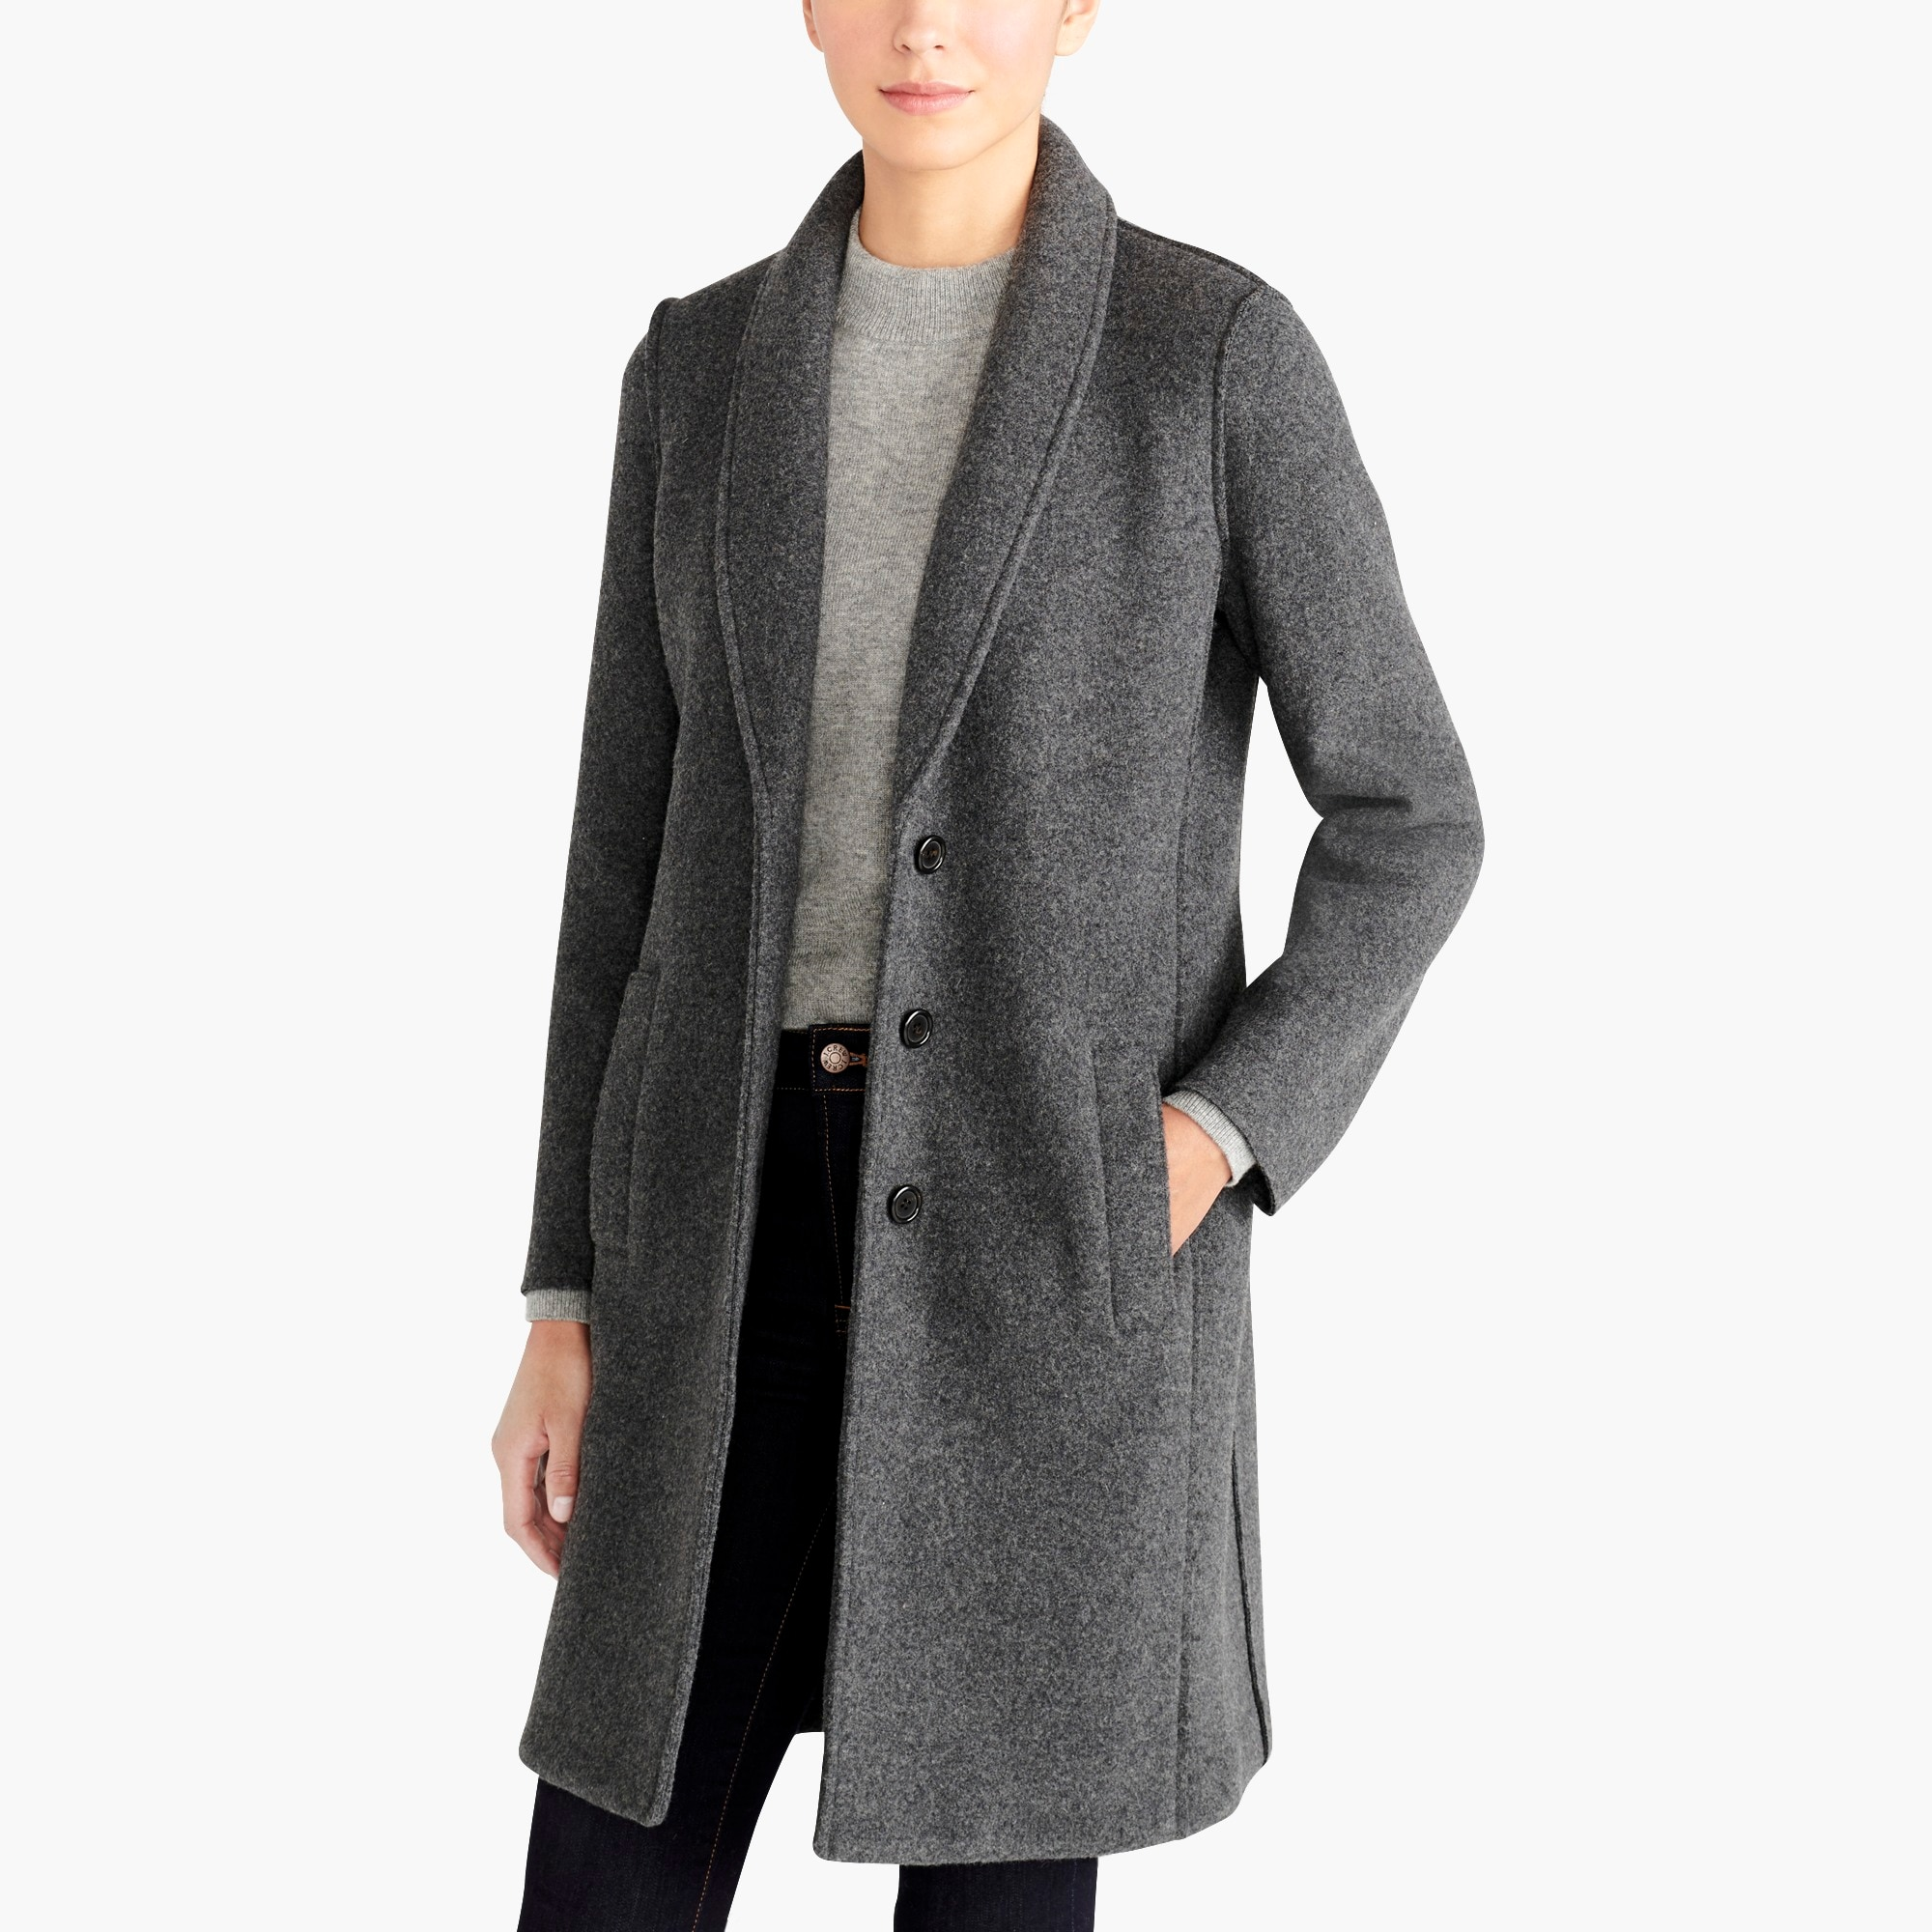 Image 1 for Boiled wool topcoat